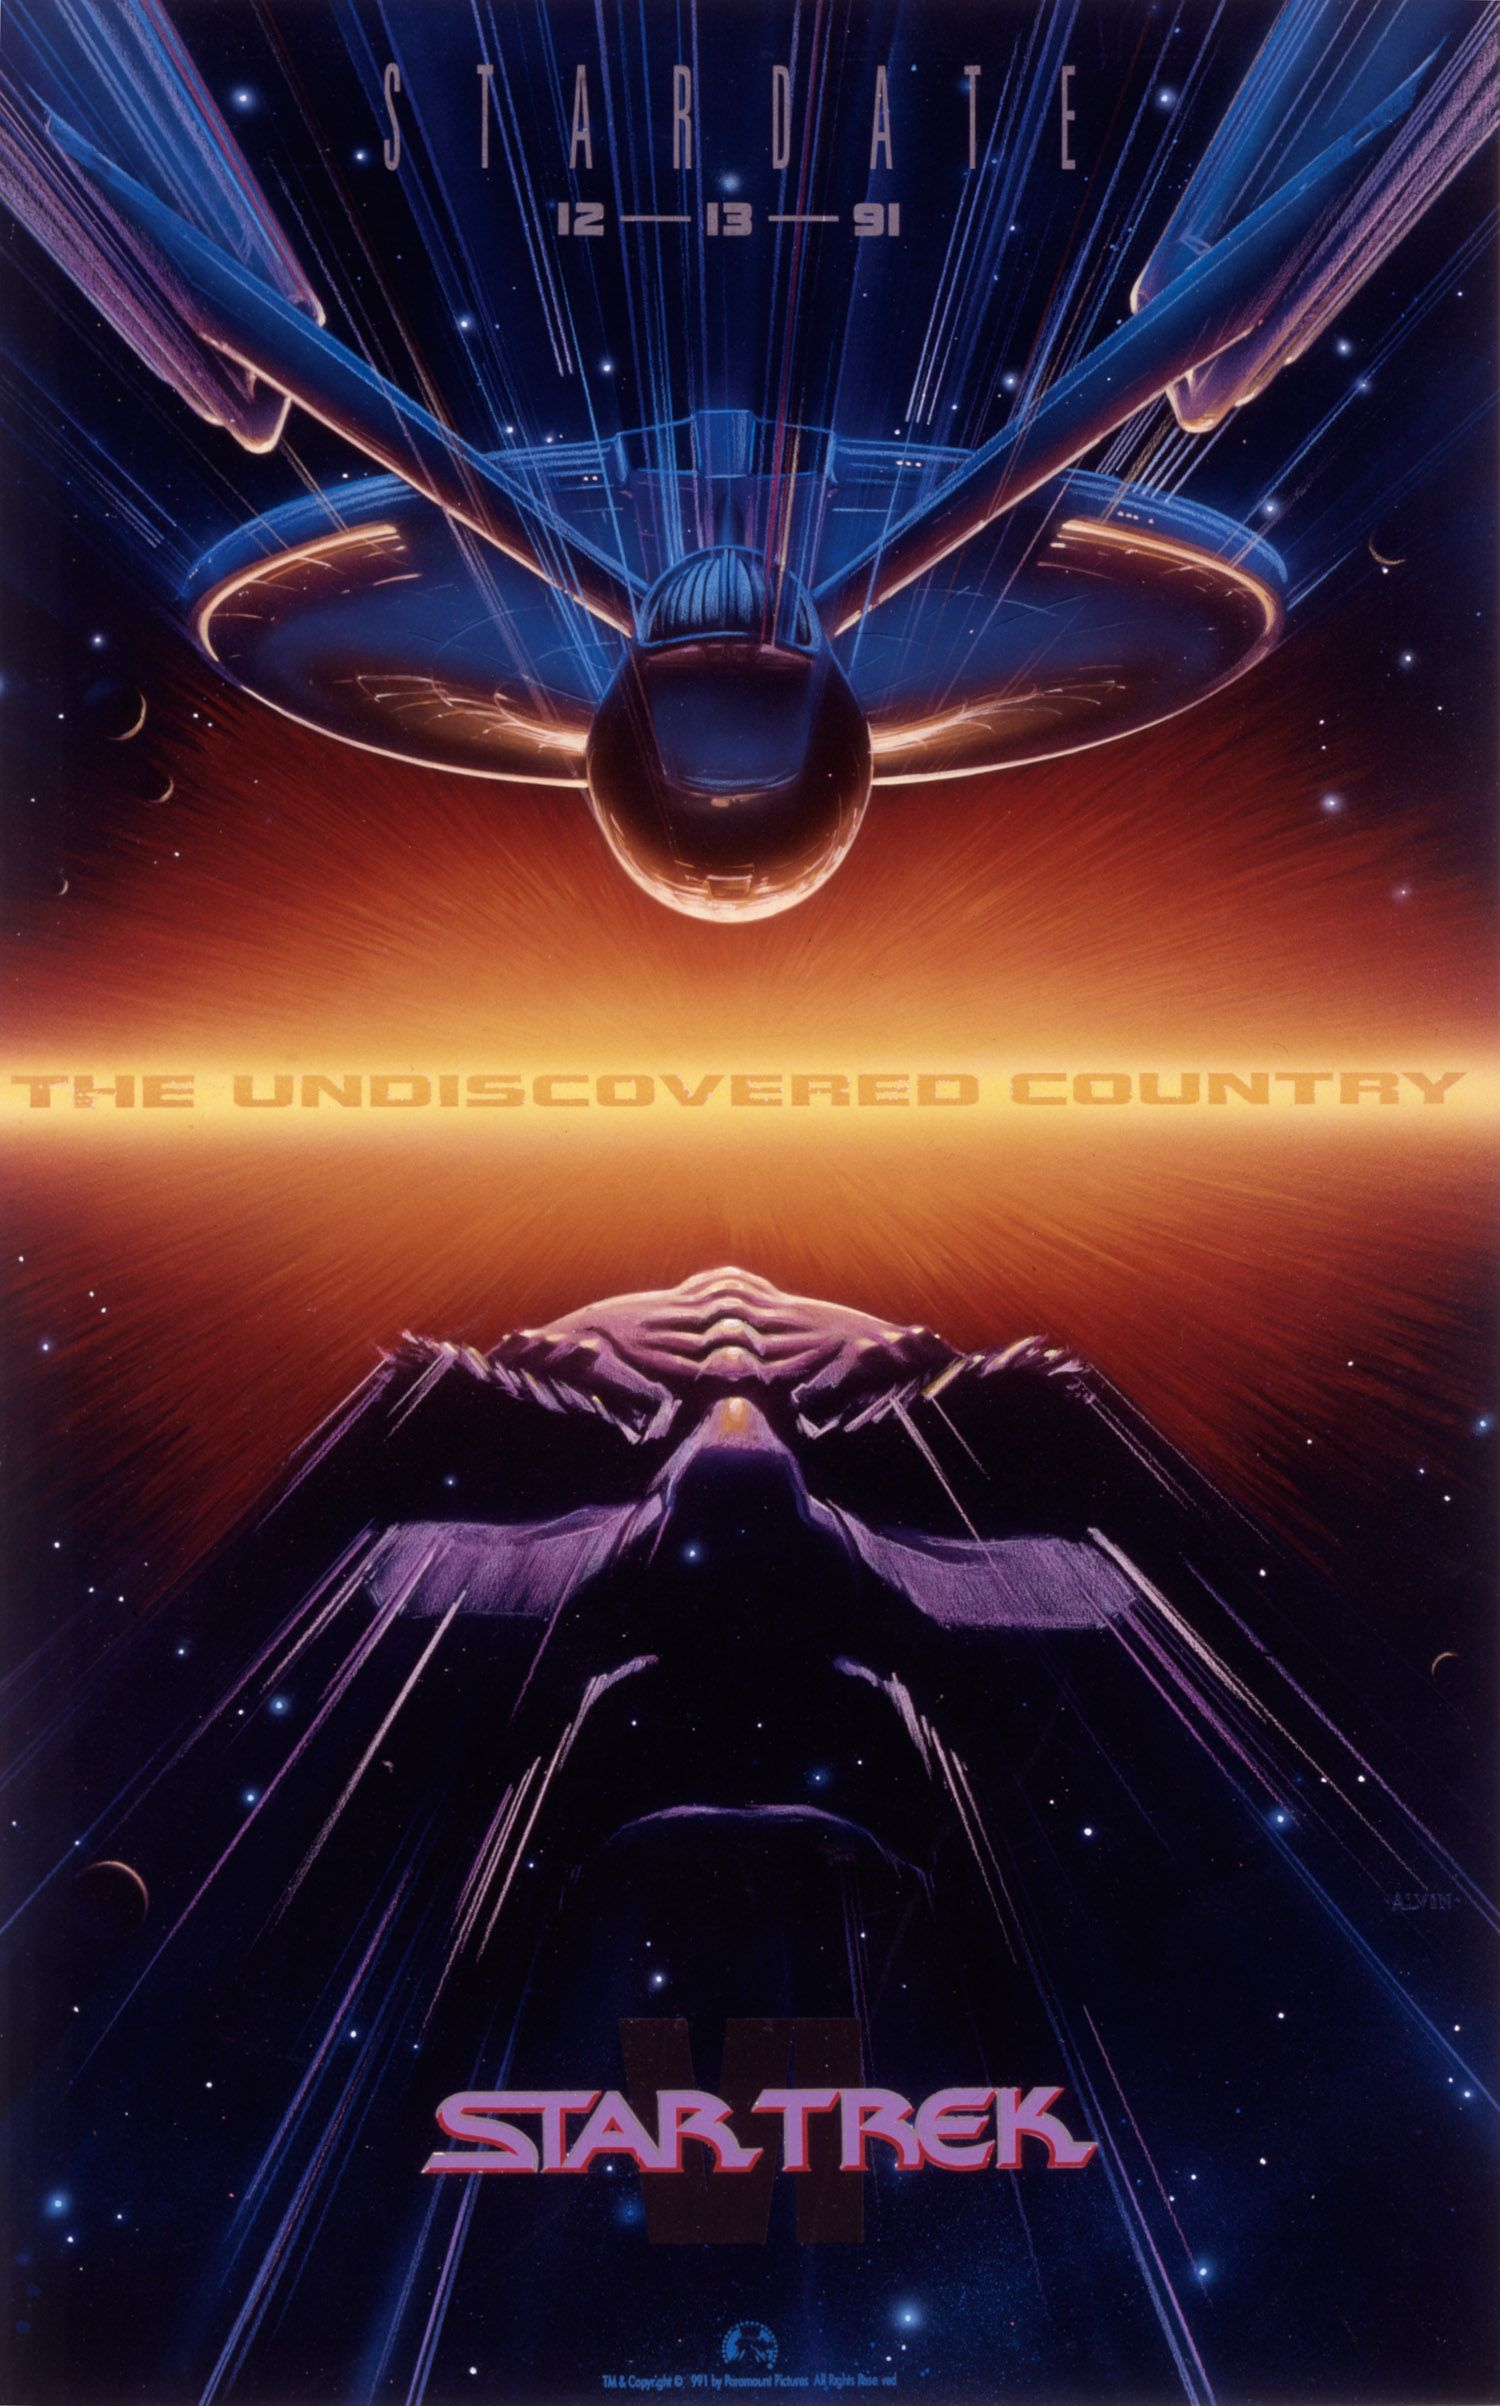 The Man Behind the Most Iconic Movie Posters of the '80s and '90s | Poster art for Star Trek VI: The Undiscovered Country. John Alvin/Paramount | WIRED.com